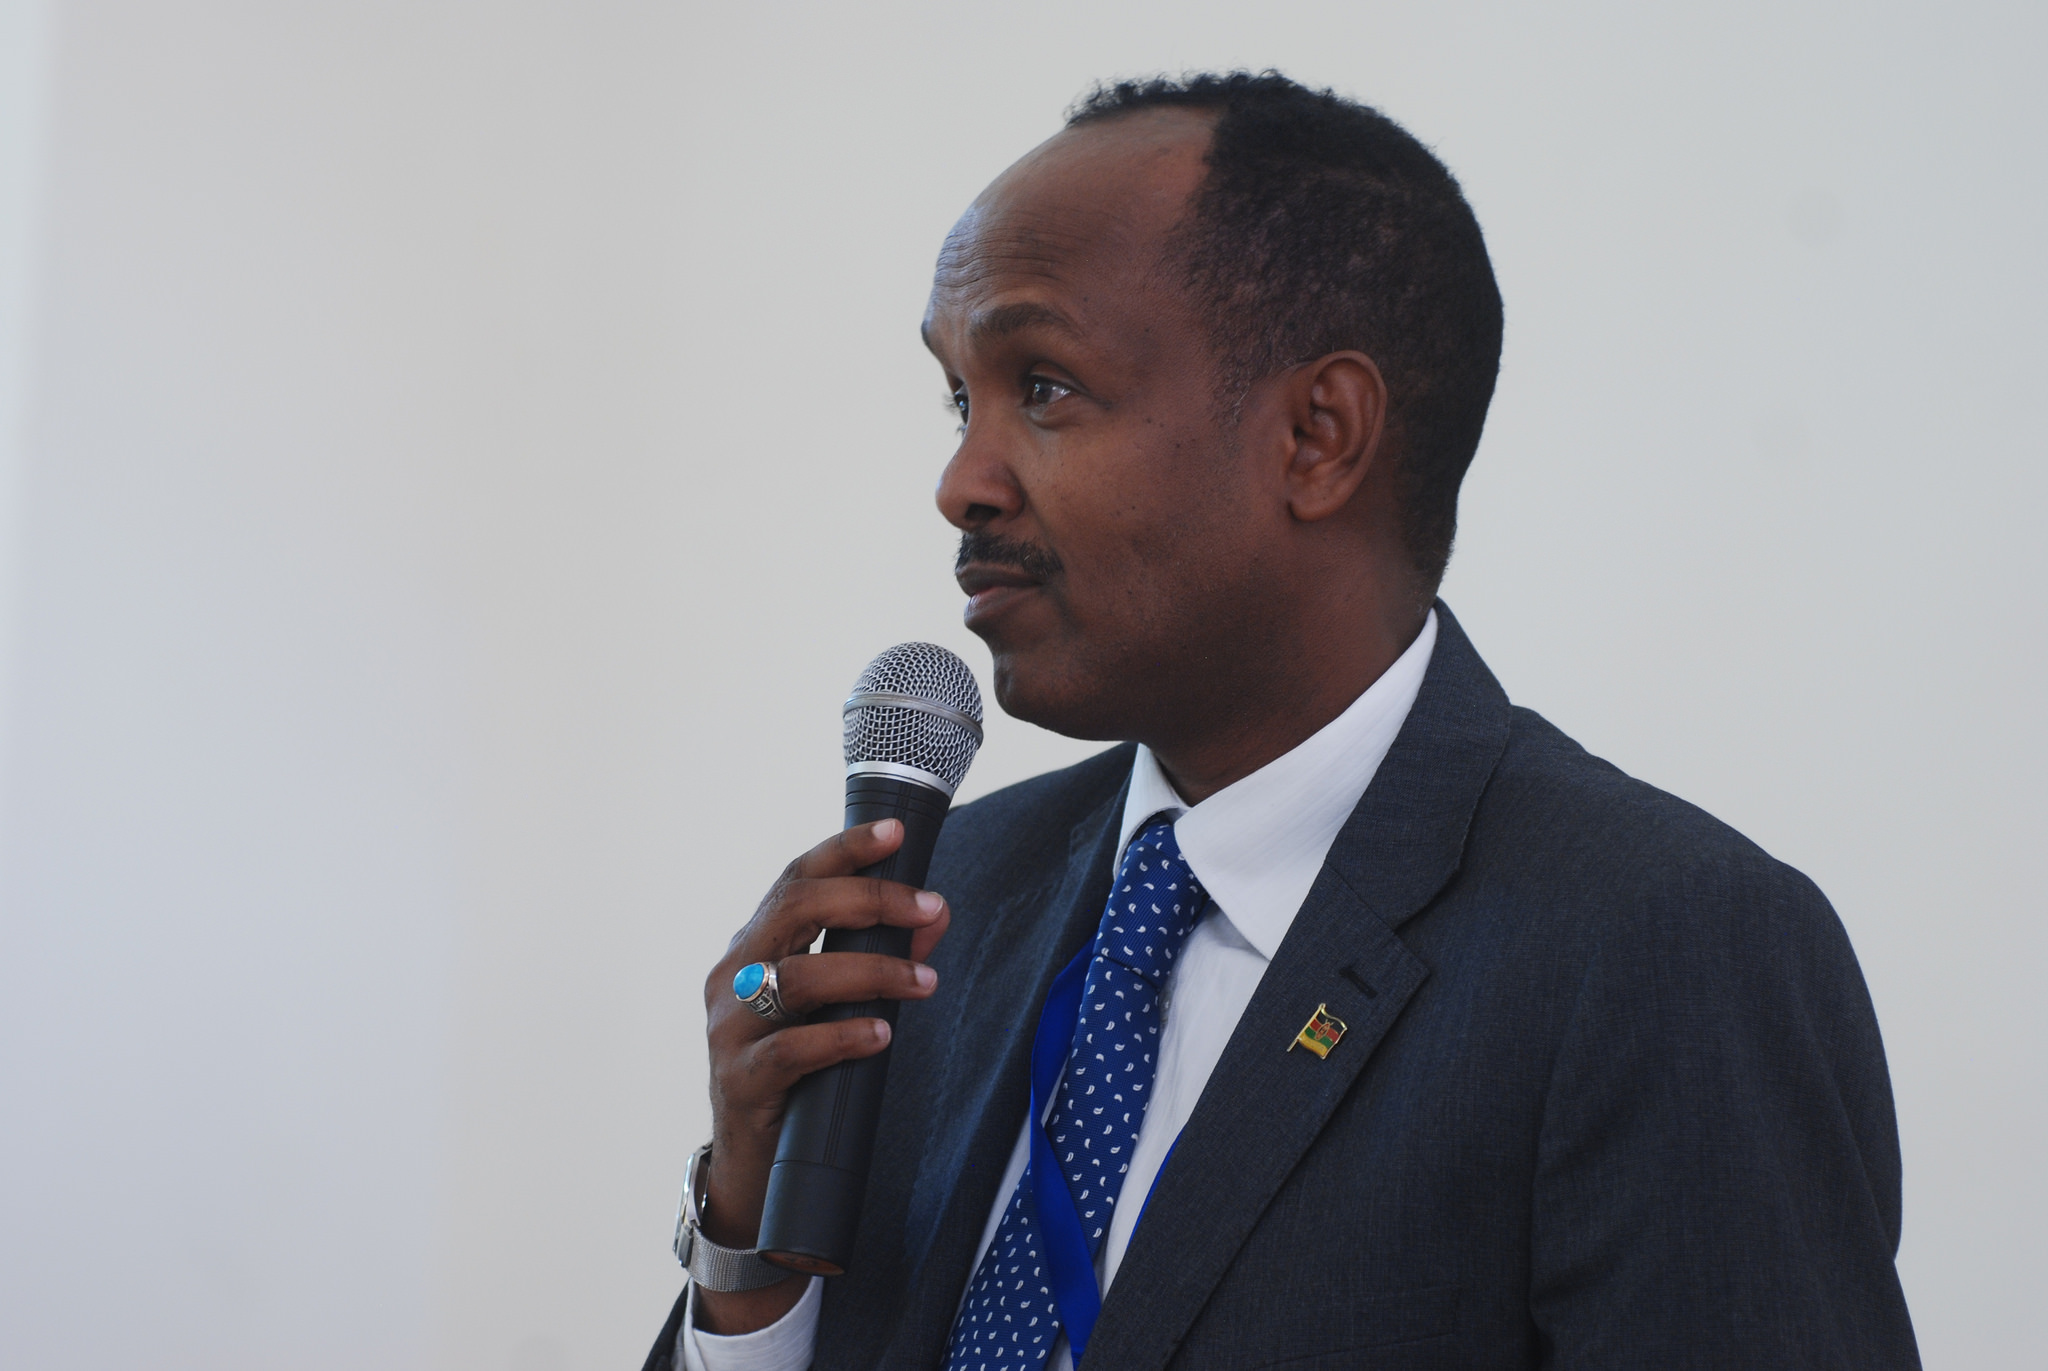 Dr Mukthar Ogle, Senior Advisor on Strategic Initiatives for Arid and Semi-arid Lands, Executive Office of the President of Kenya (photo:Leela Channer)